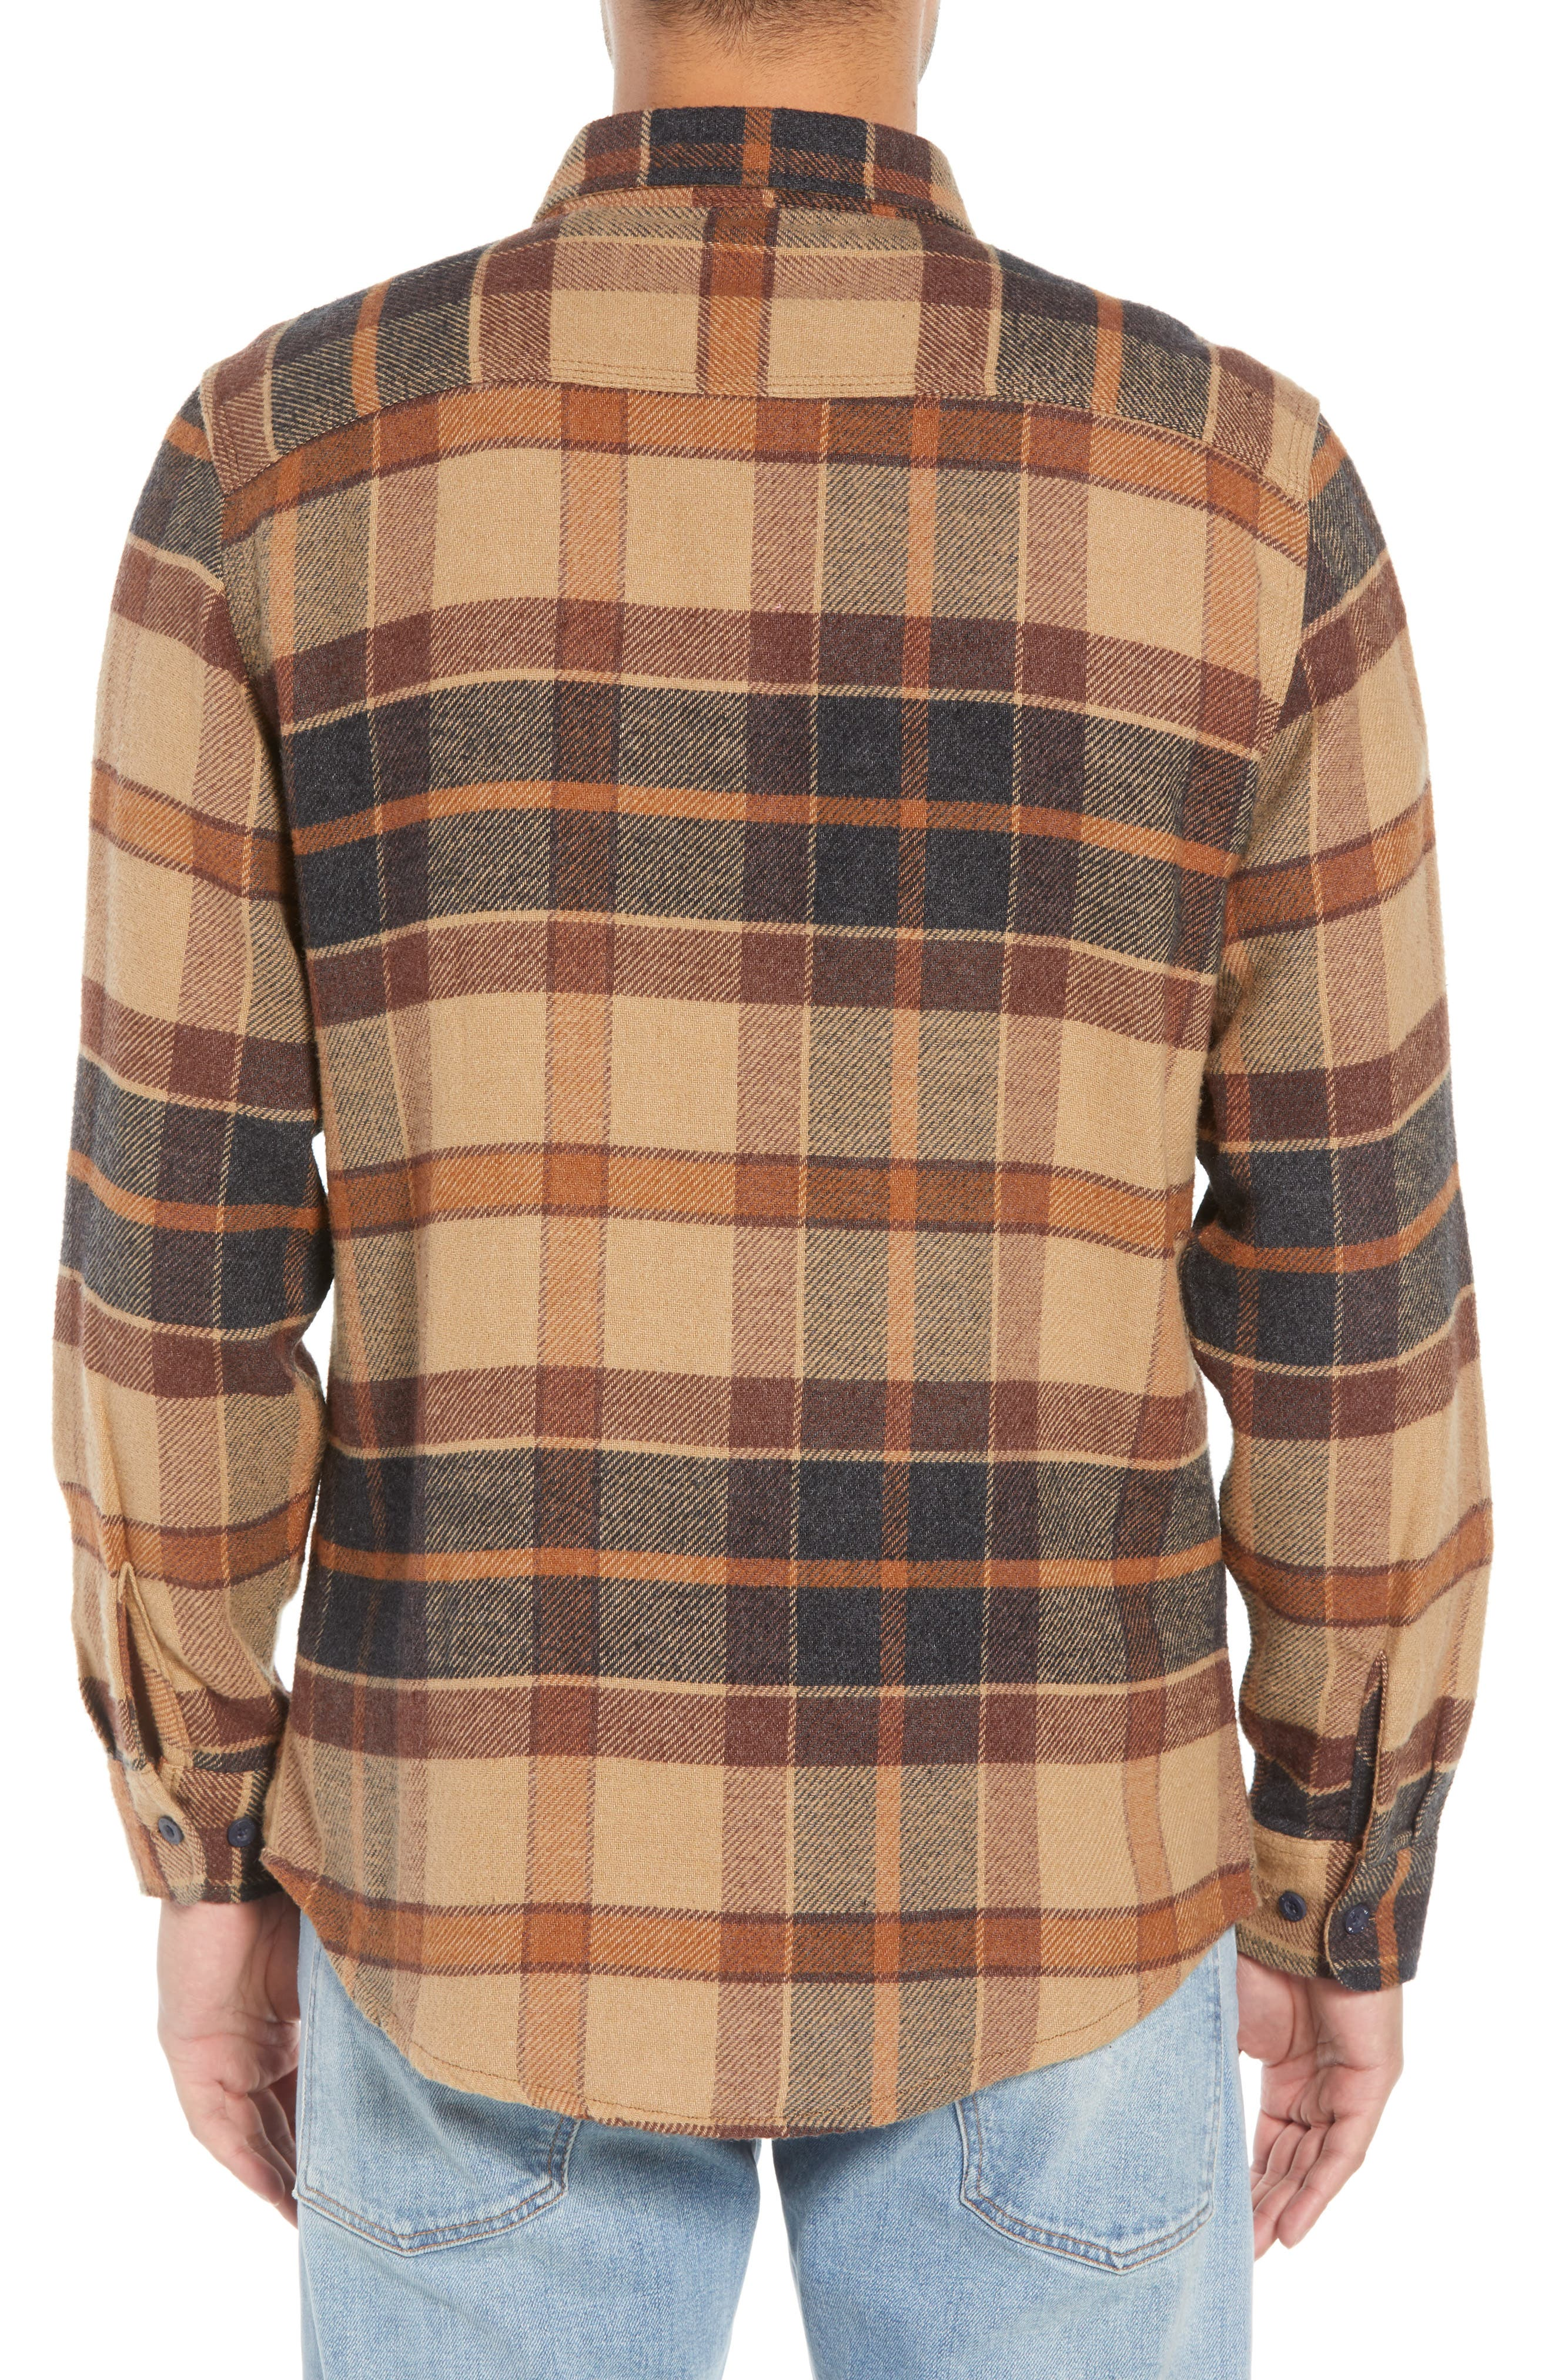 Bowery Flannel Shirt,                             Alternate thumbnail 29, color,